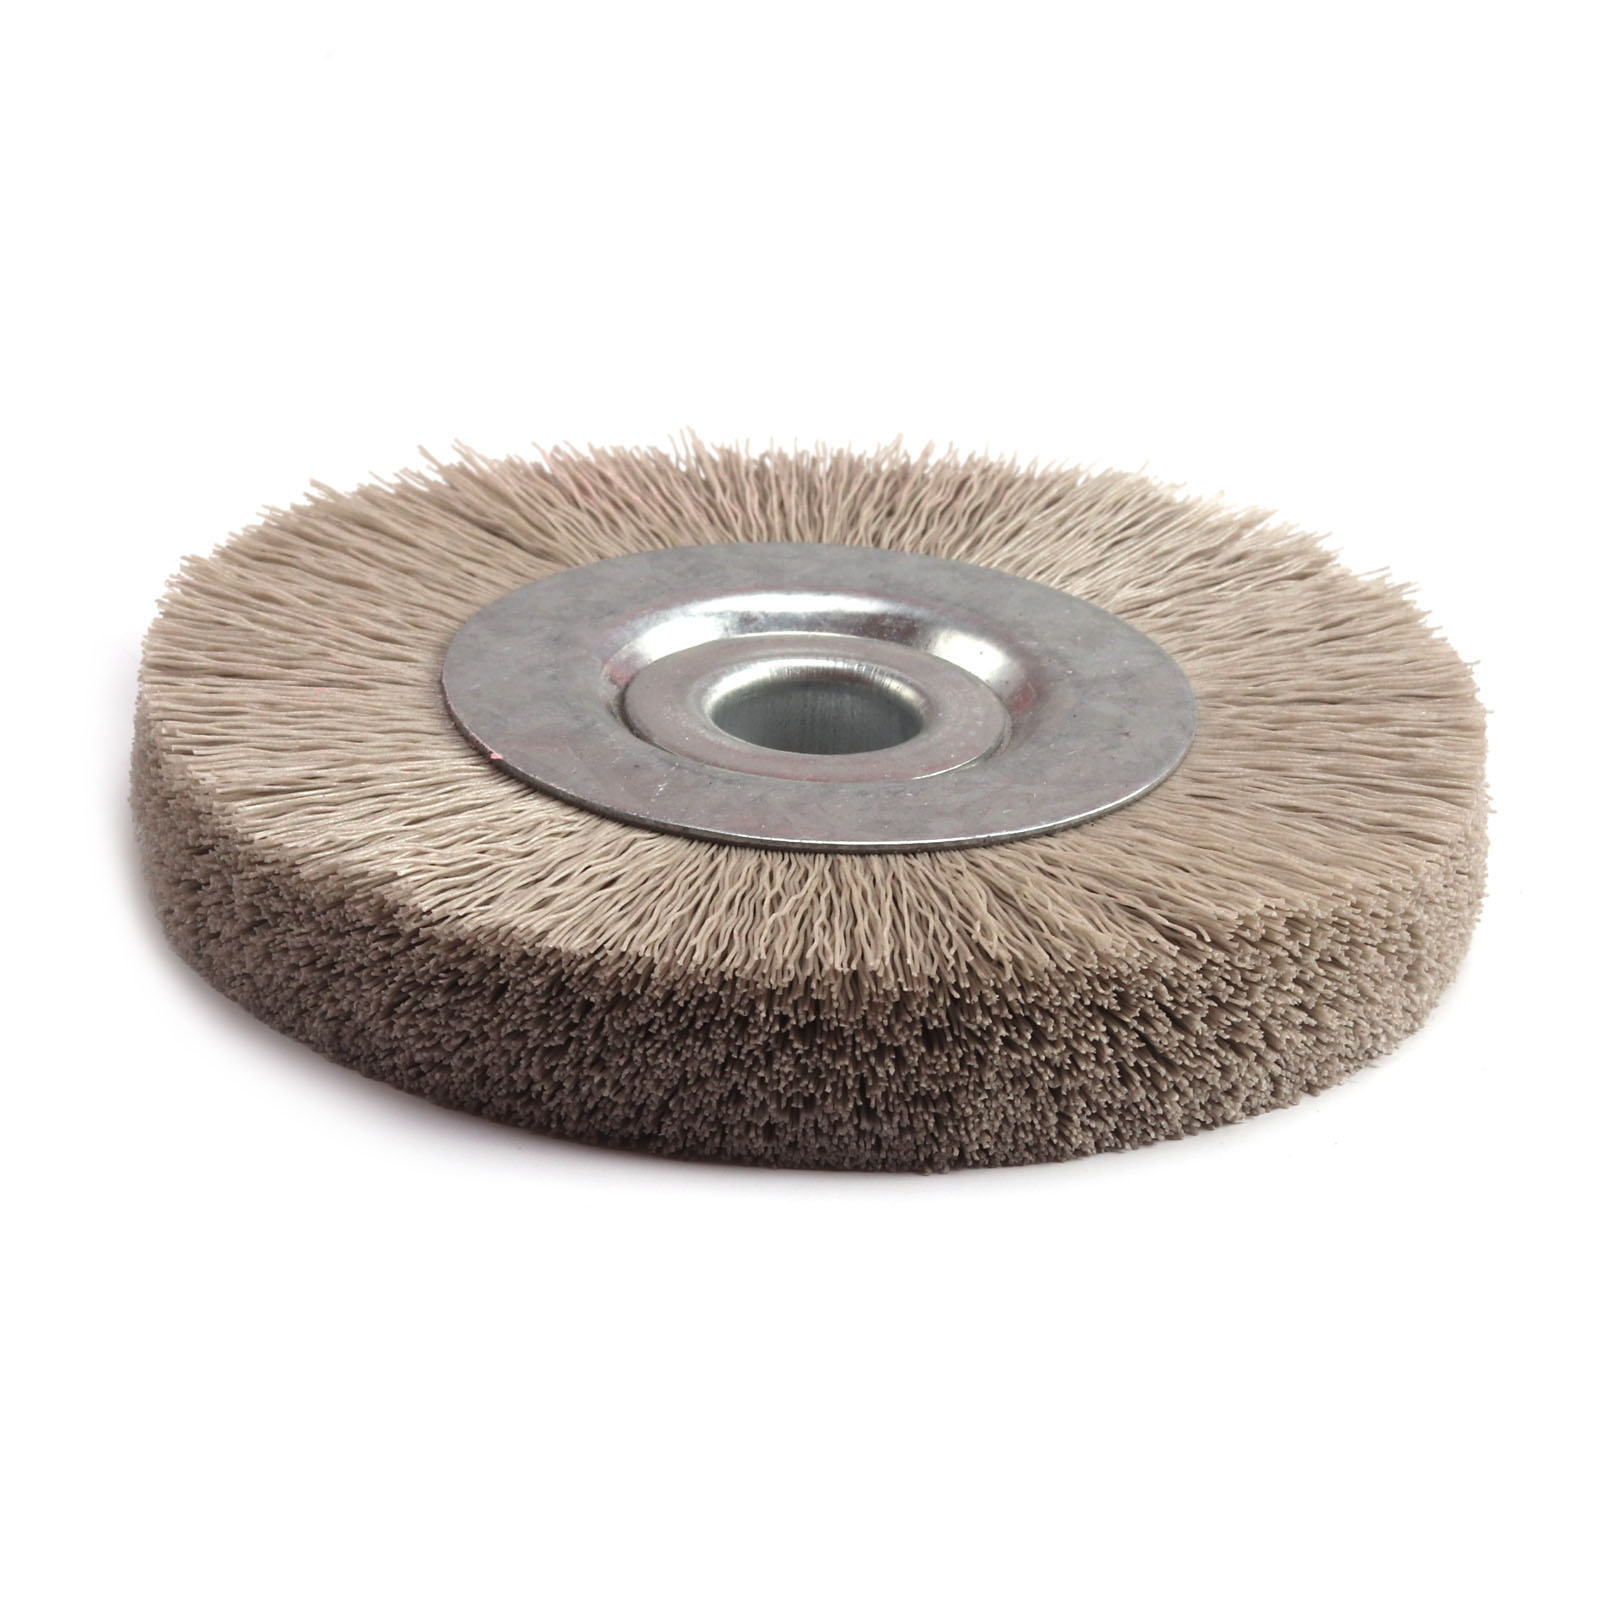 Superb Details About 4Inch Abrasive Nylon Wheel Brush Dupont Silk Wheel Polish Bench Grinder 600 Grit Gmtry Best Dining Table And Chair Ideas Images Gmtryco